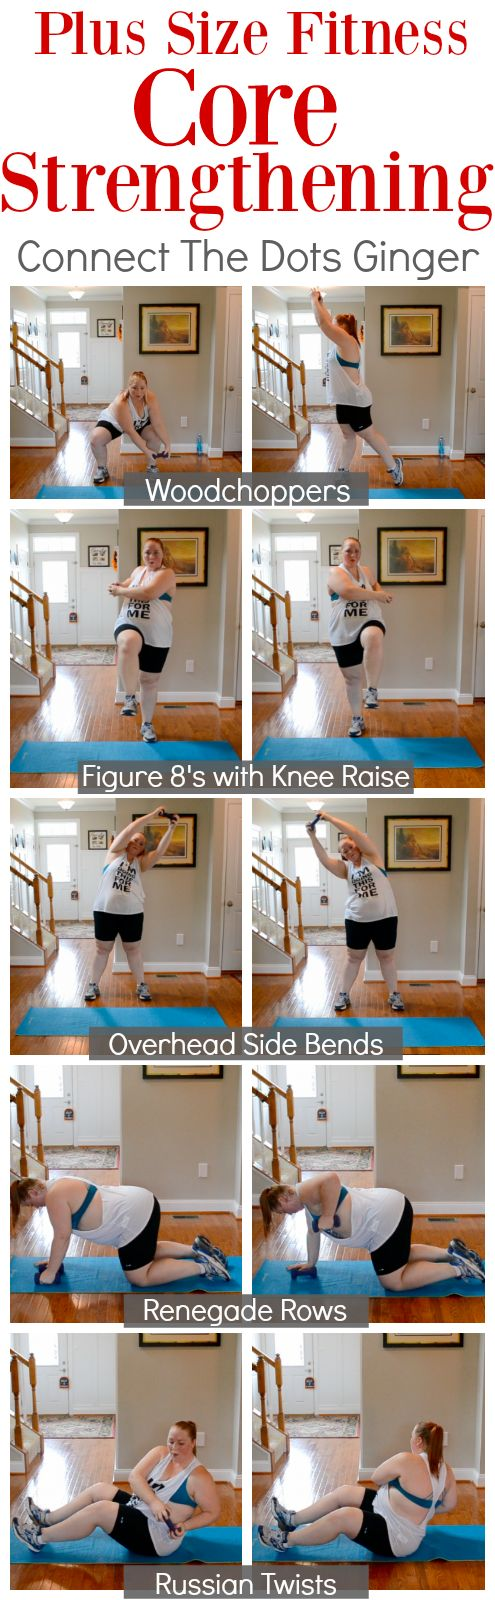 Plus Size Fitness: Core Strengthening Workout